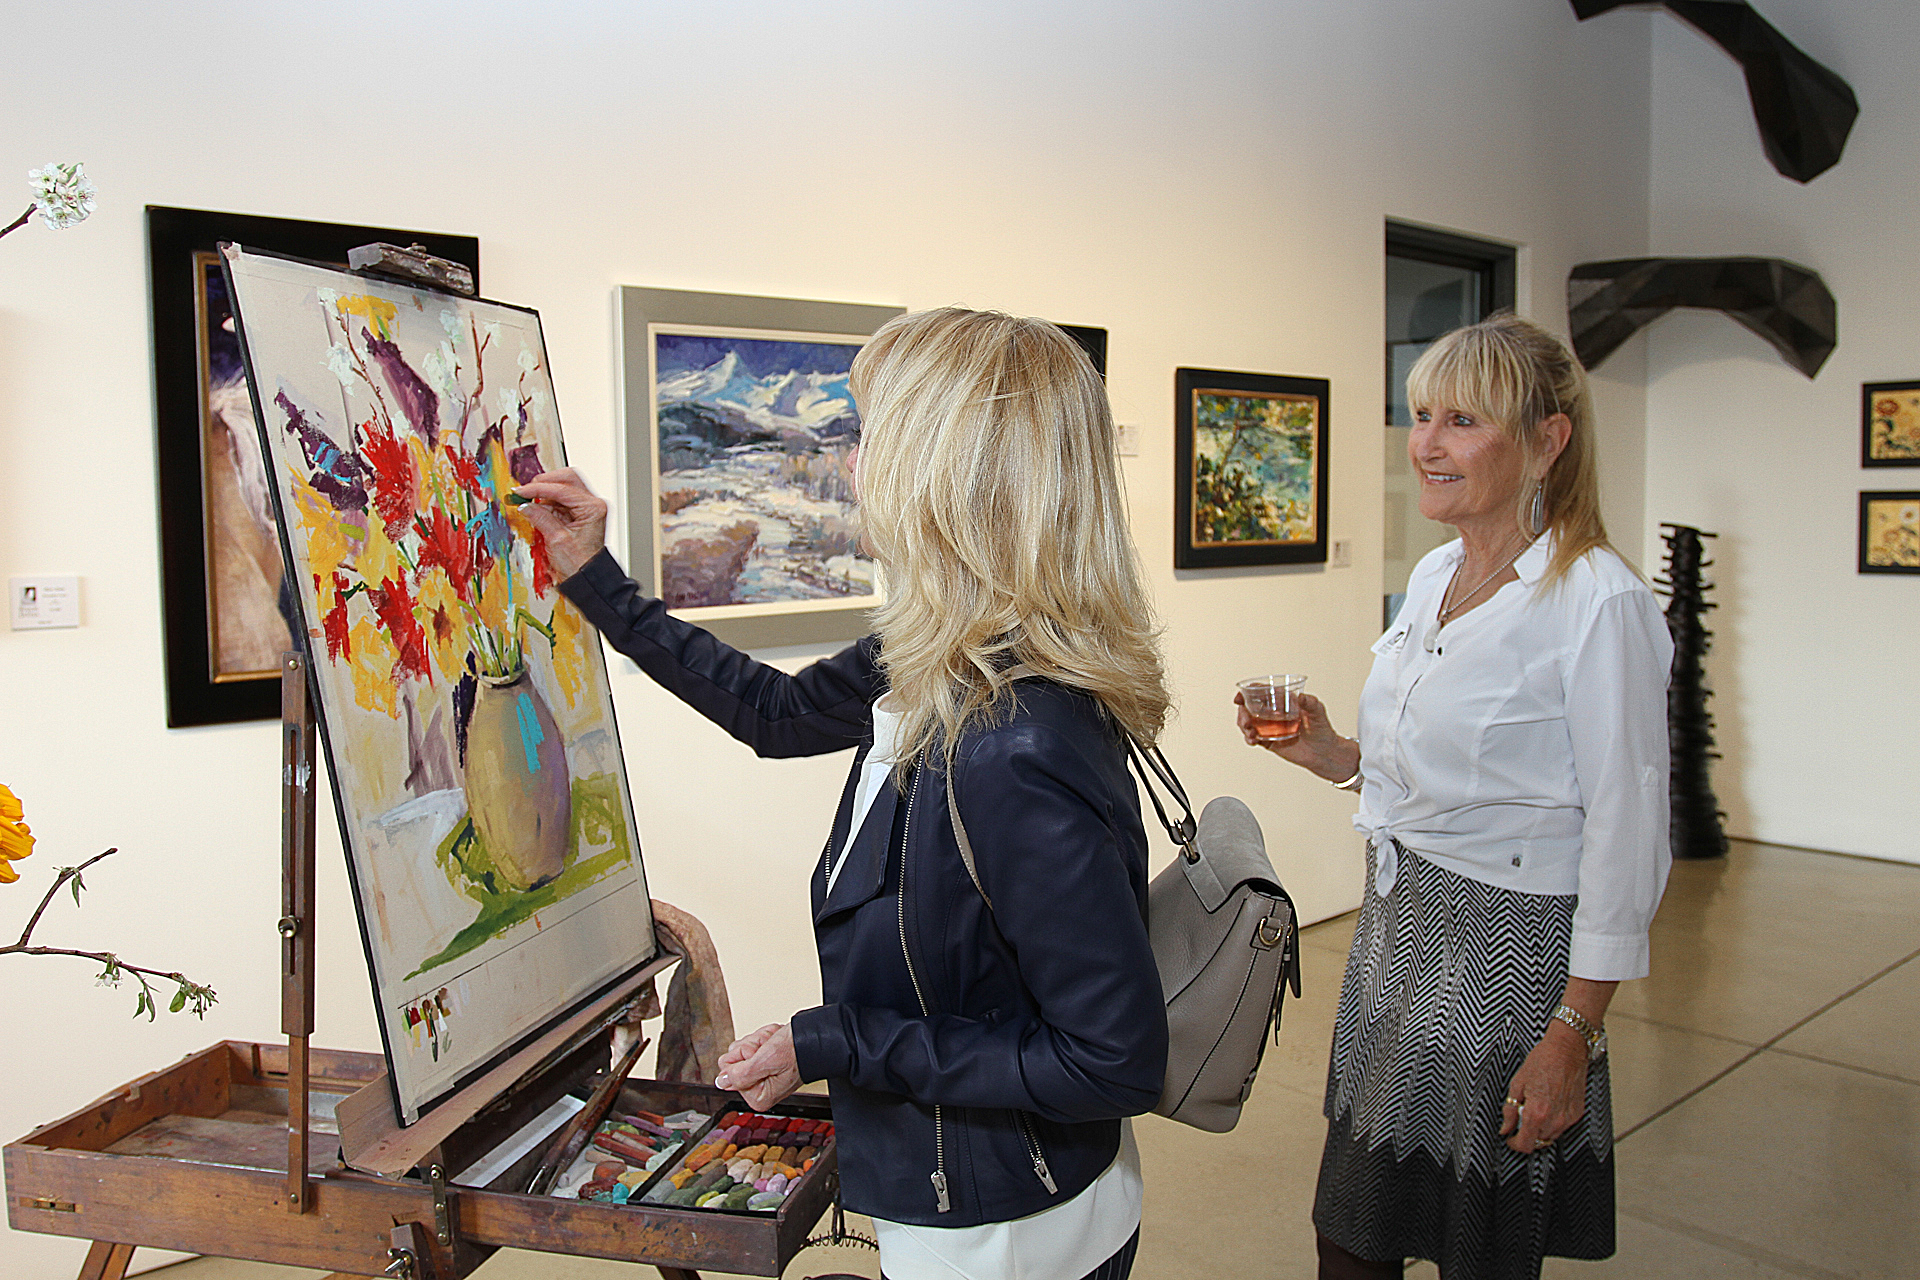 09 – IMG_204Q4980_Opening Gala_Artist Terrie Lombardi with Founding Connoisseur Christy Mardensen painting